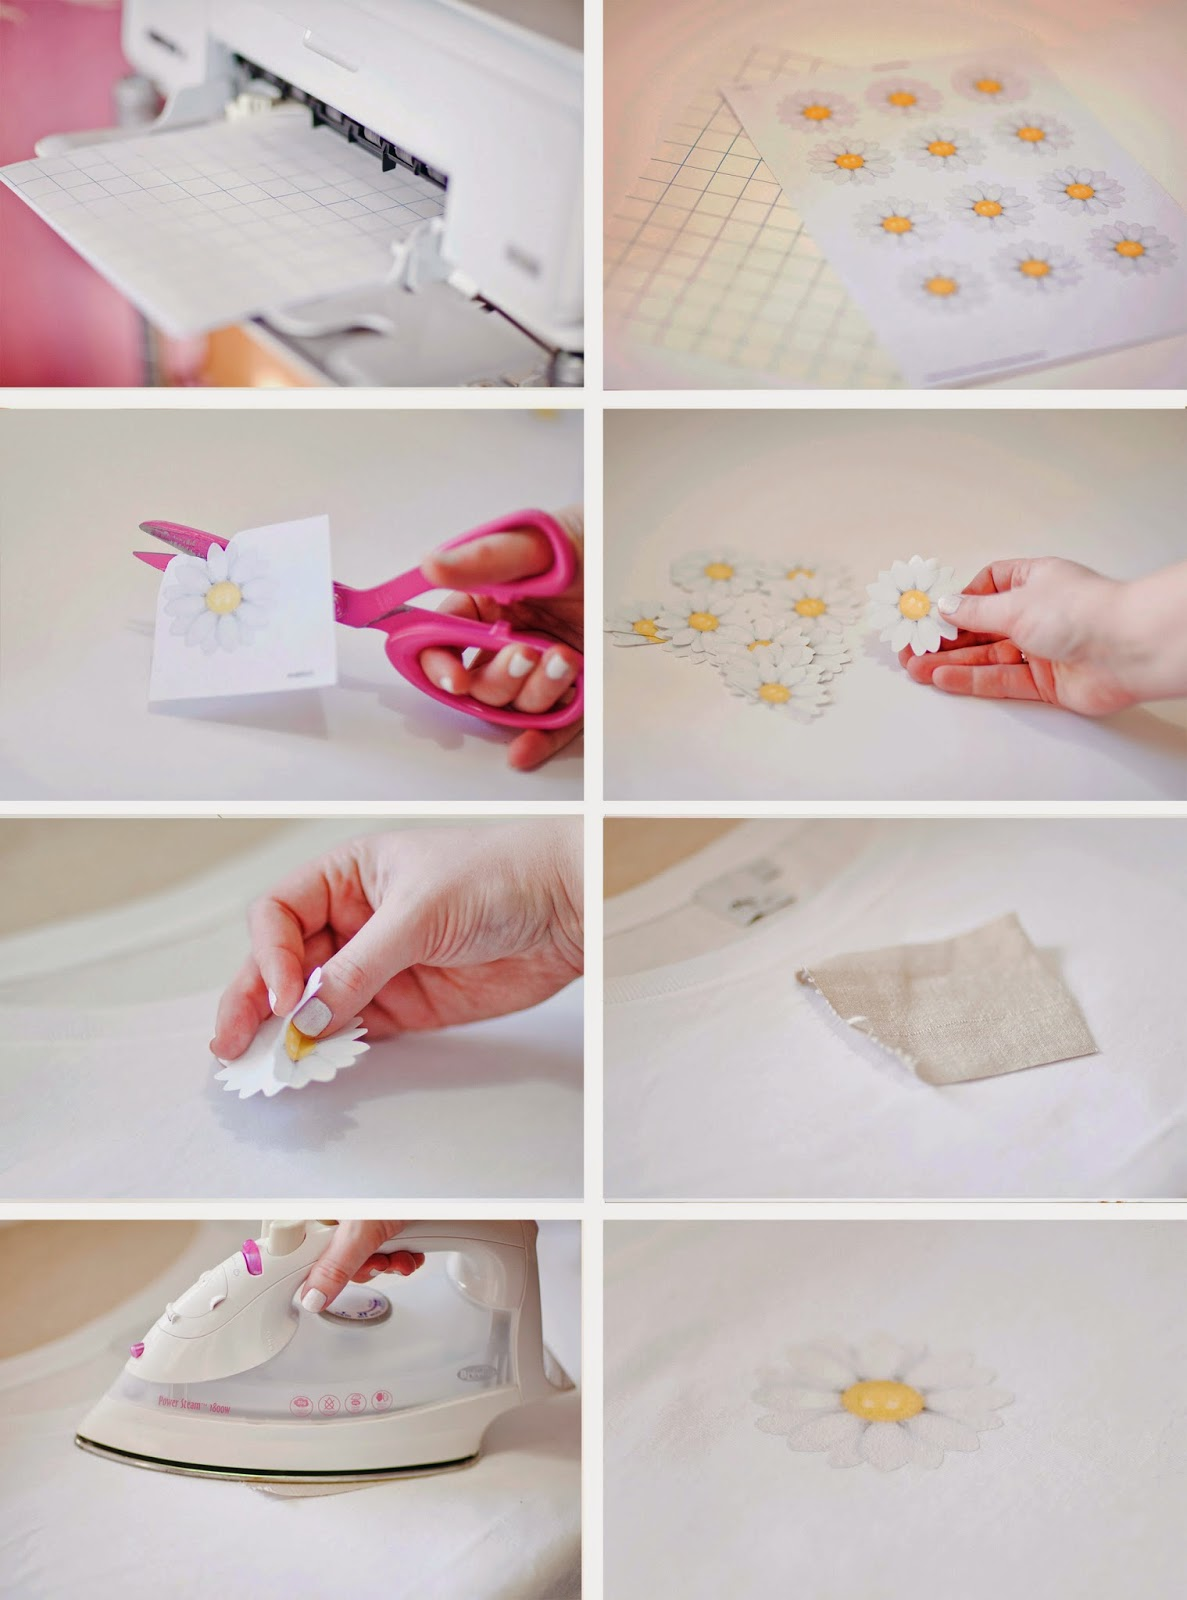 How to print a design on shirt at home awesome home for Print your own t shirt design at home